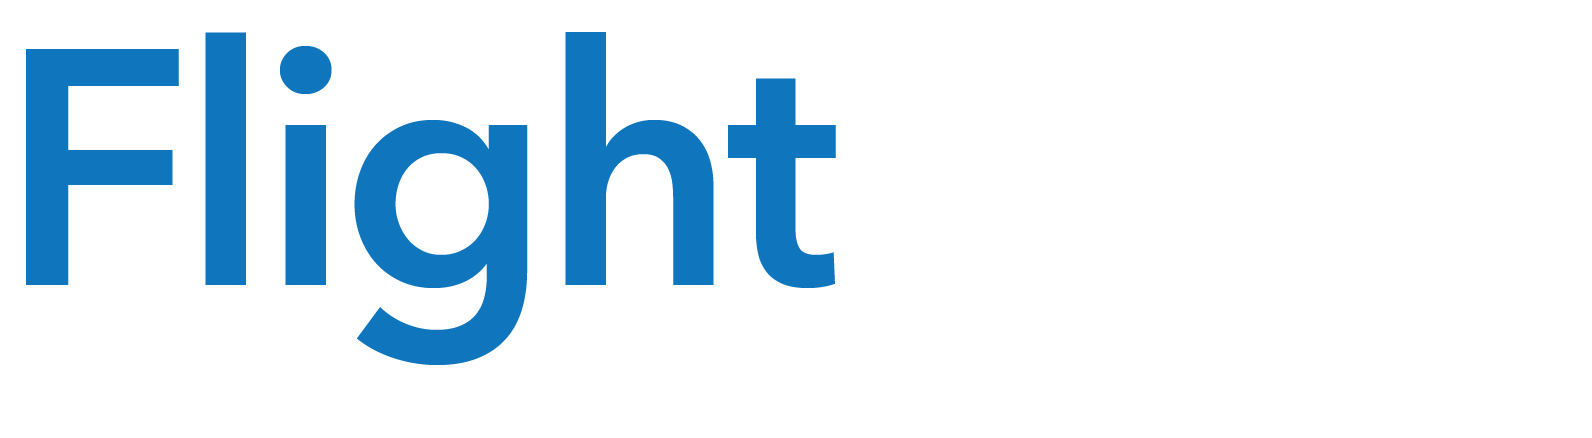 Flight Deck Logo